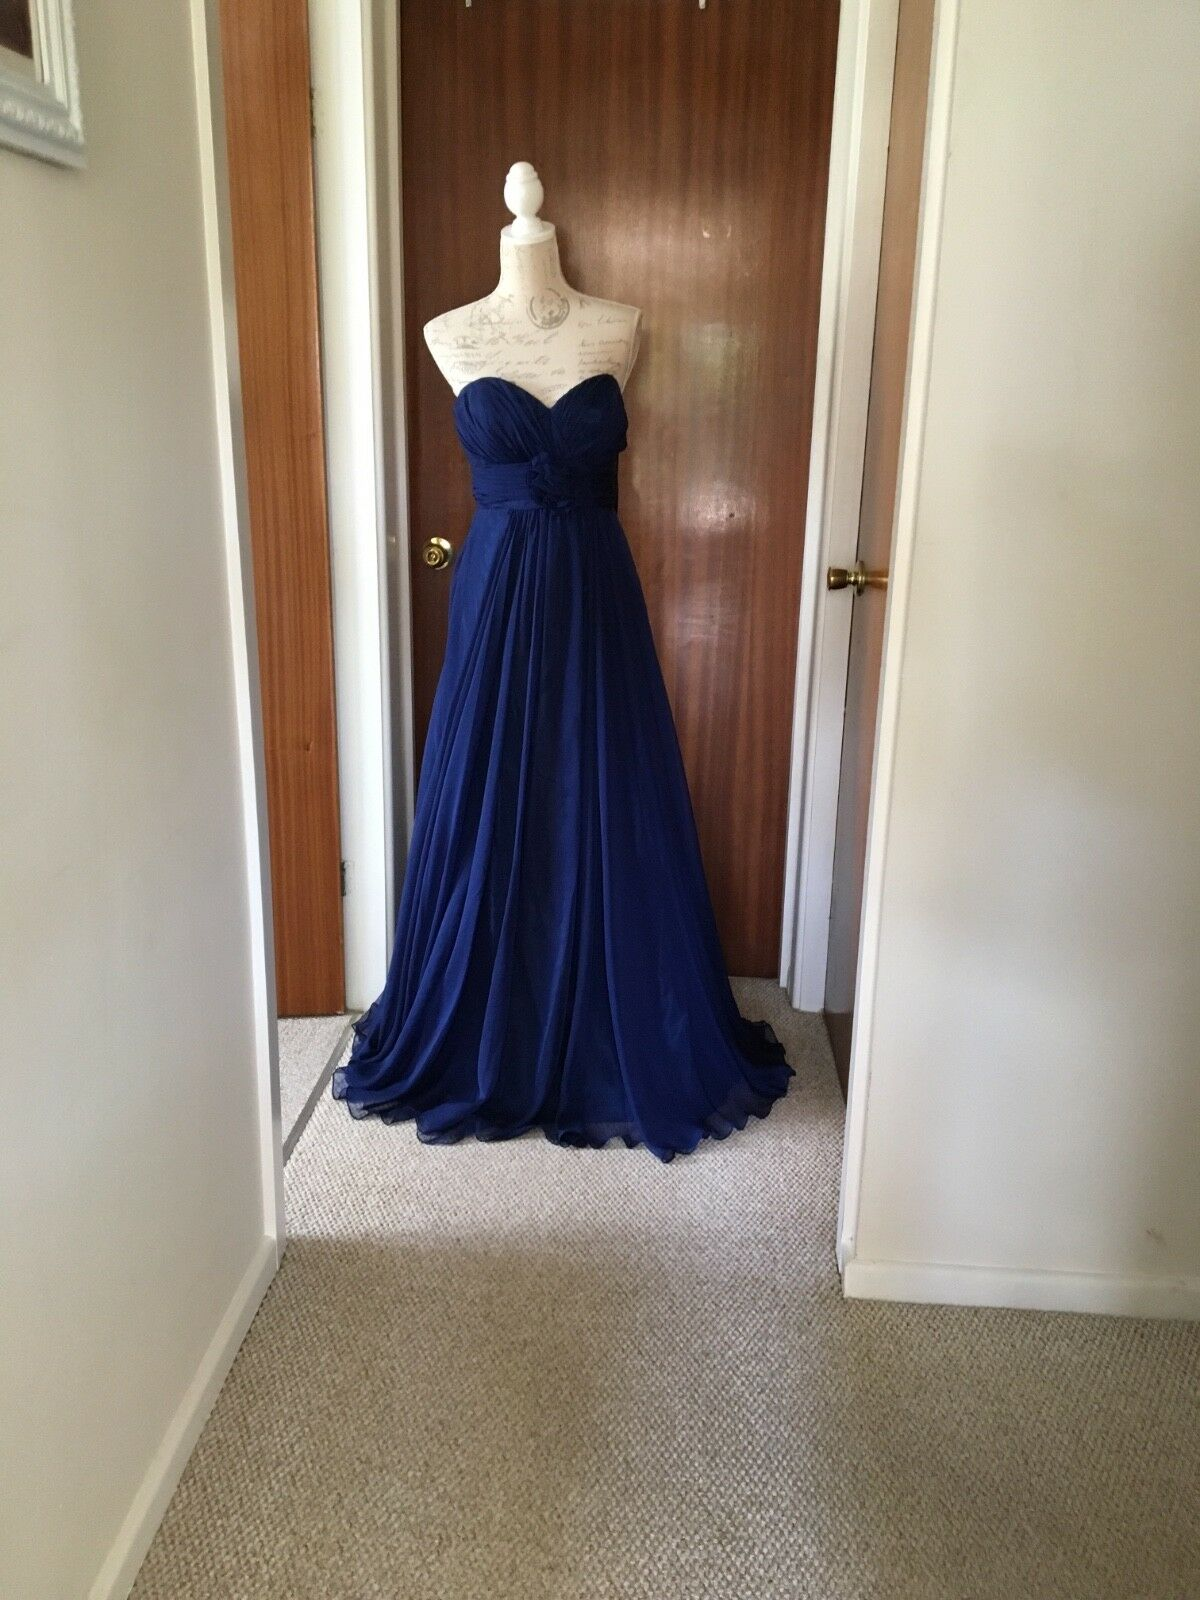 Ladies 'Alyce B'Dazzle' navy strapless prom dress  , size 12with tags